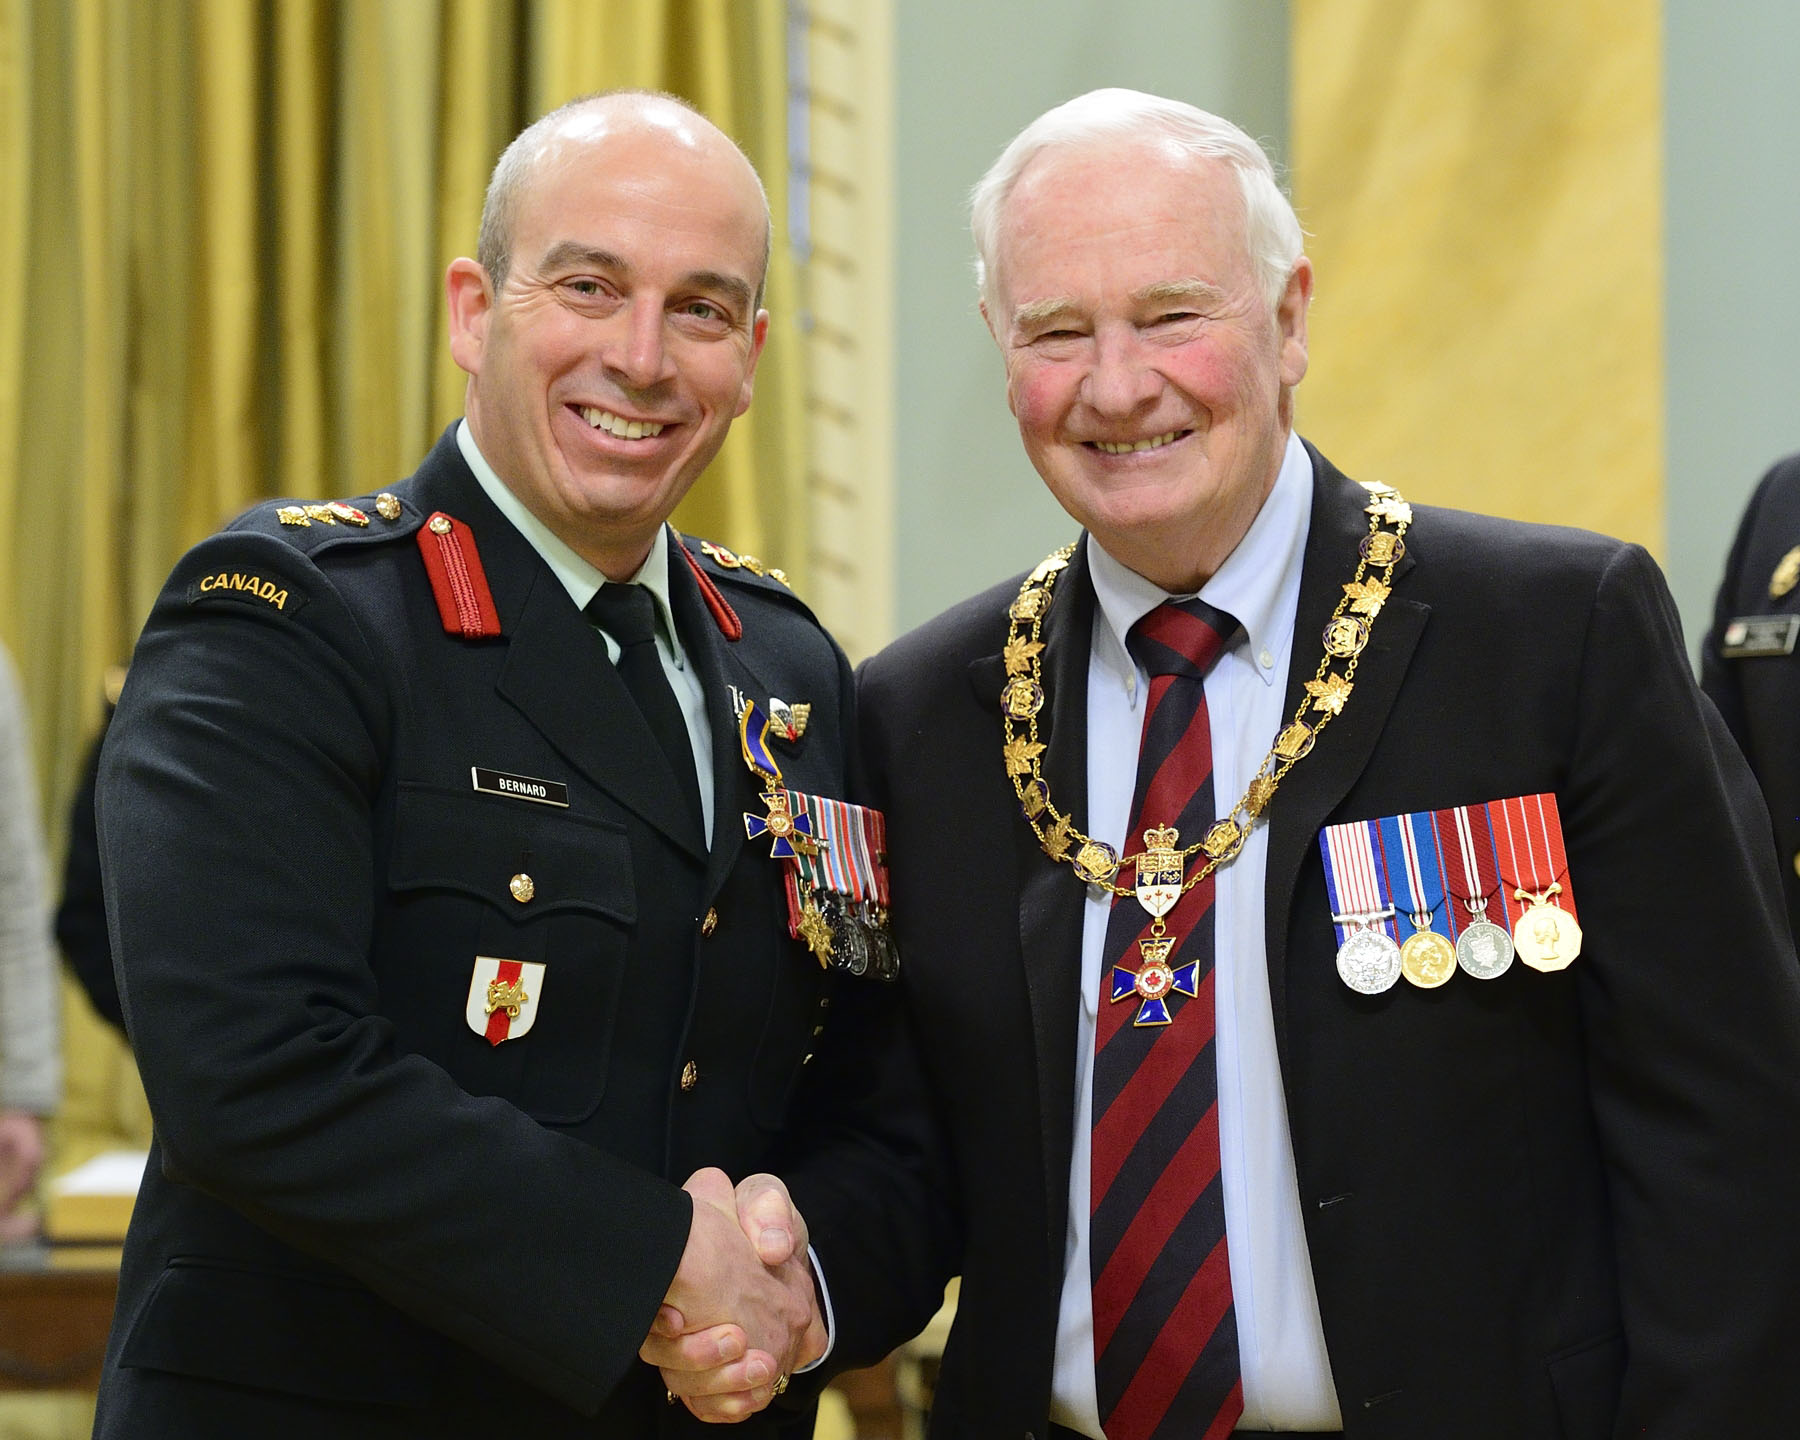 His Excellency presented the Order of Military Merit at the Officer level (O.M.M.) to Colonel Jean André Simon Bernard, O.M.M., C.D., from the Royal Military College Saint-Jean Richelain, Quebec.